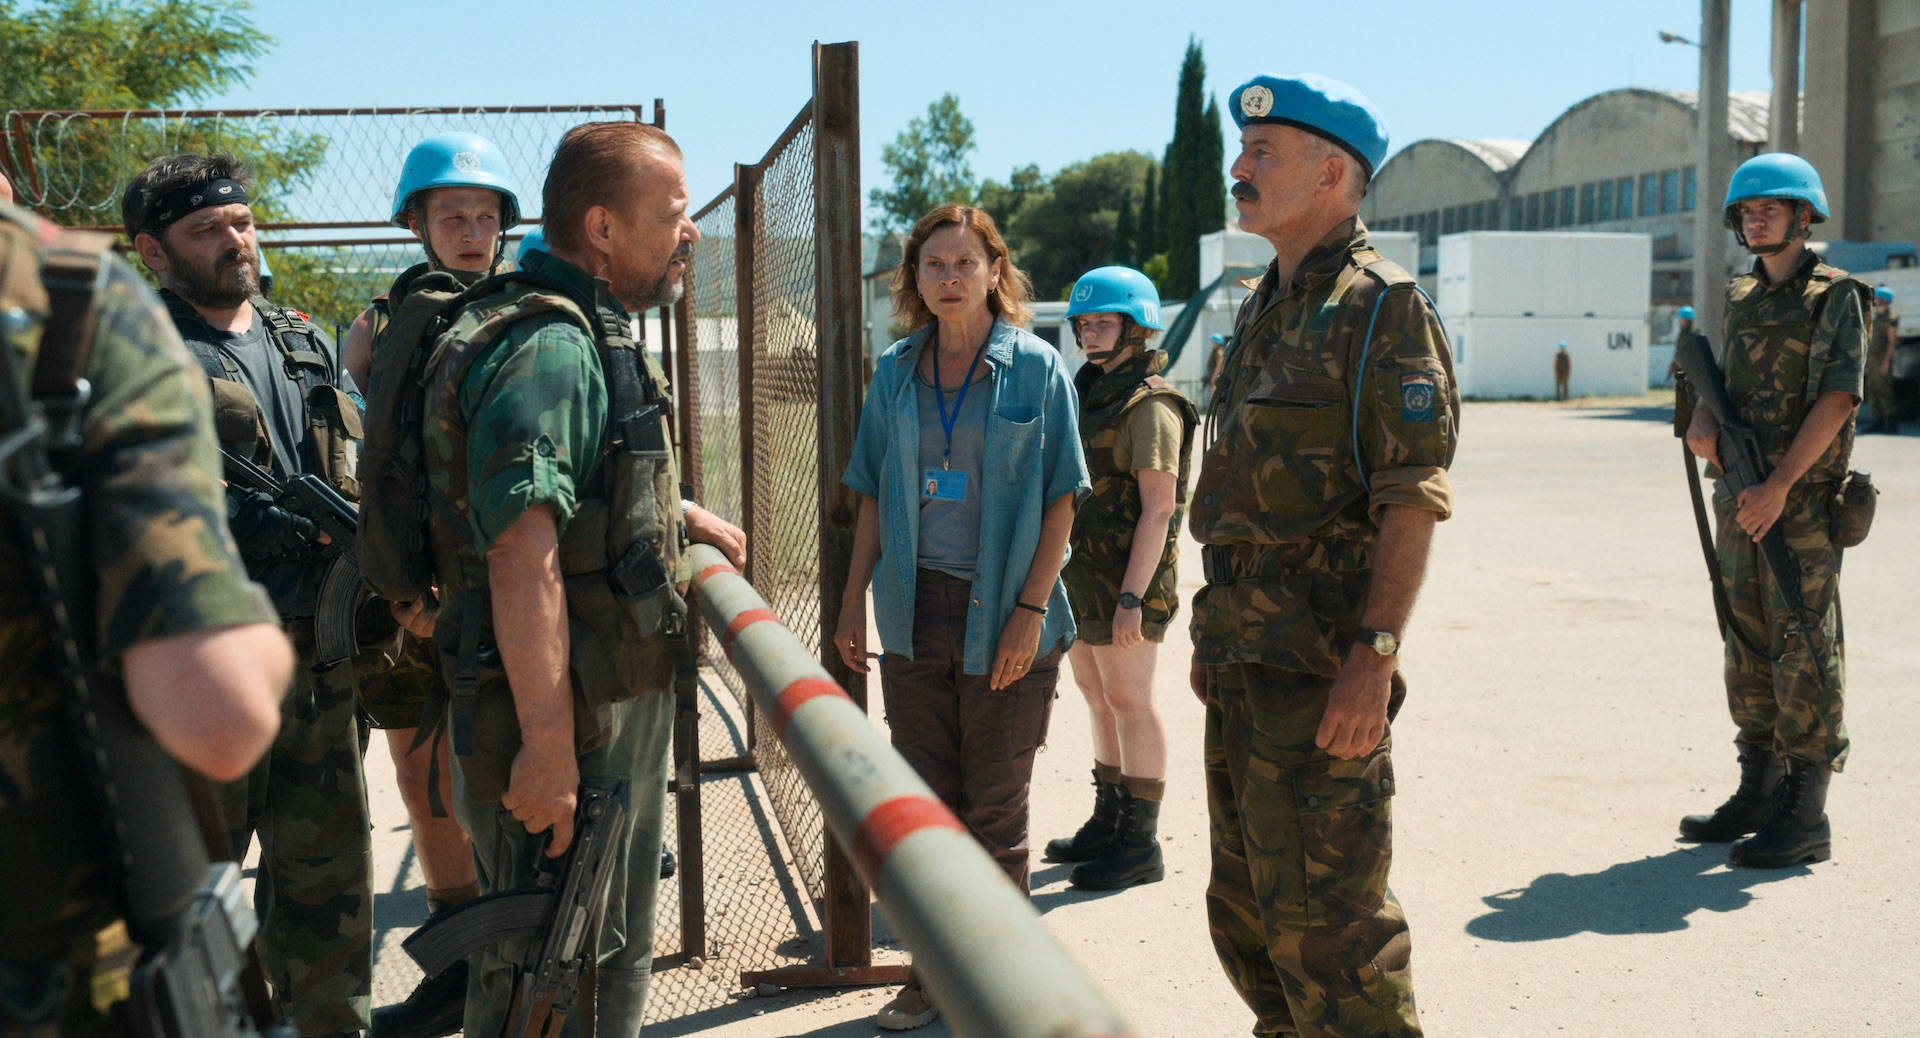 Aida at the gate of the UN compound - confrontation between UN and Serbian officers